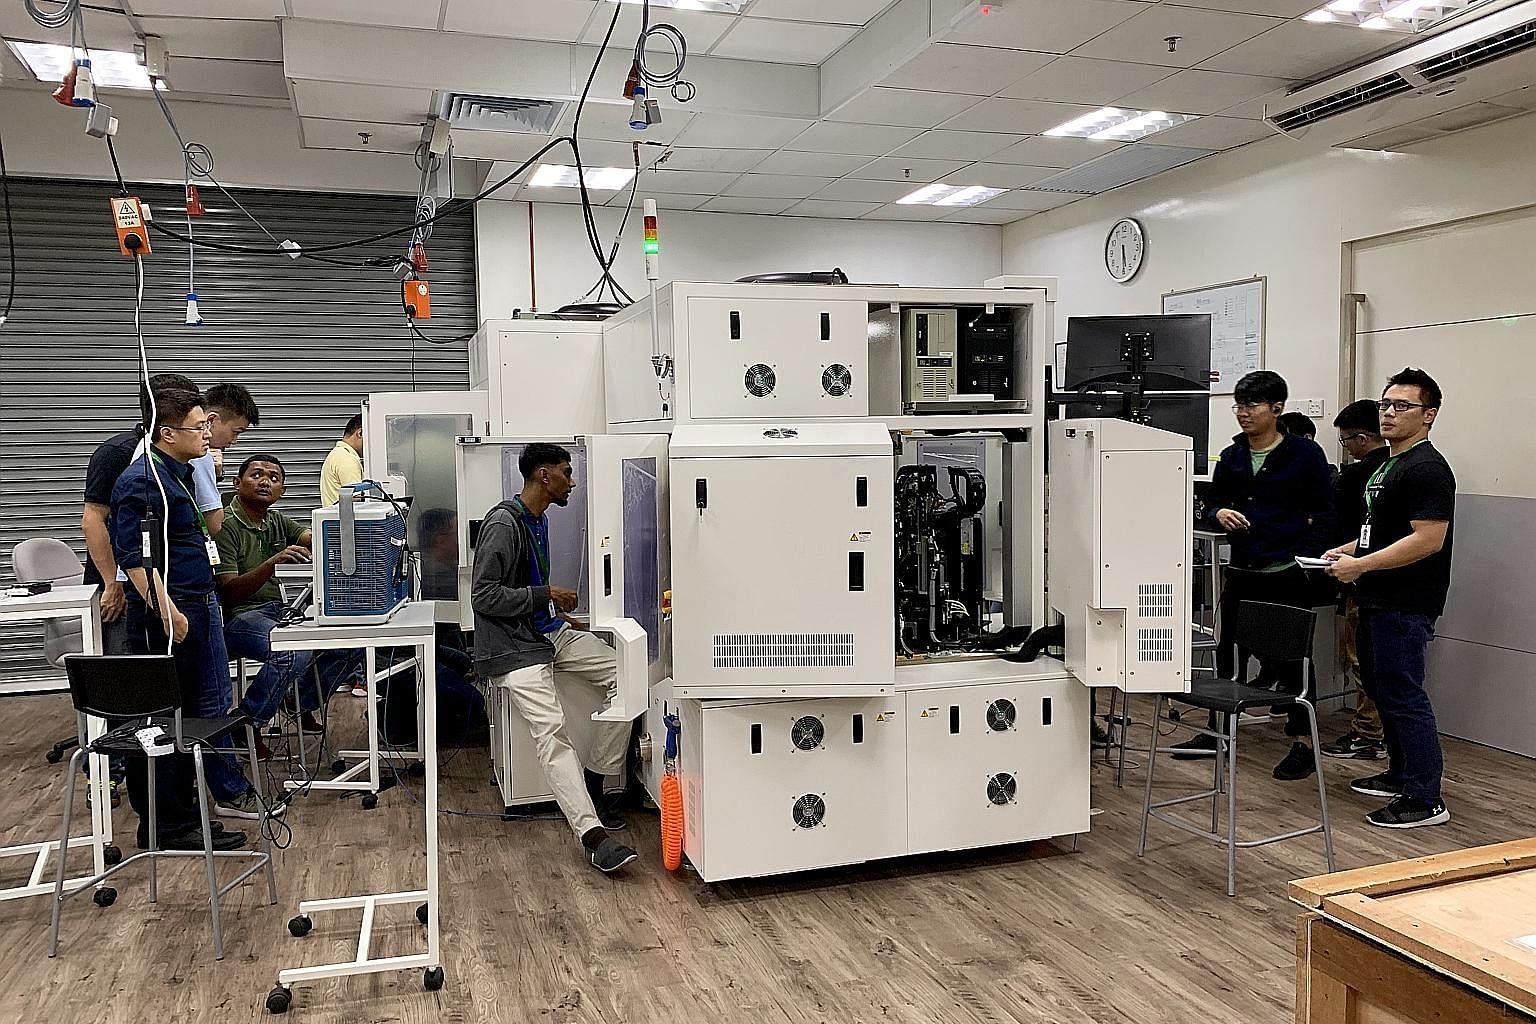 """Above: Datuk Seri Wong Siew Hai, chairman of the American Malaysian Chamber of Commerce's electronics committee, says Penang needs to win the """"talent war"""" to ensure investors stay. Left: Staff at high-technology equipment maker Pentamaster, which has"""